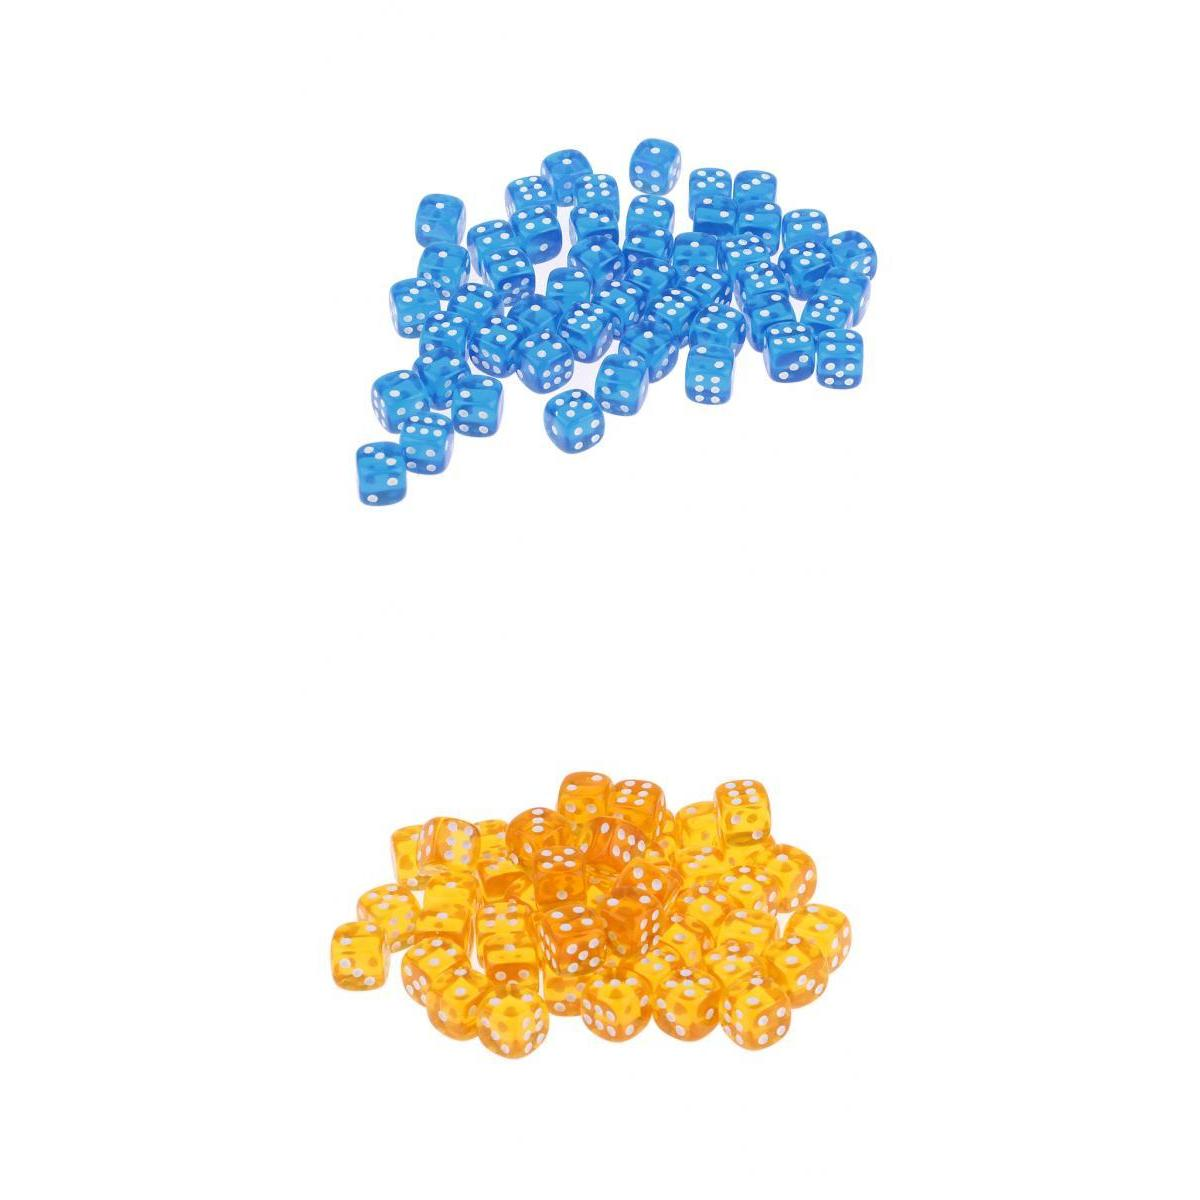 100x D6 Dice Polyhedral Acrylic for DND RPG MTG Table Board Game Blue,Orange